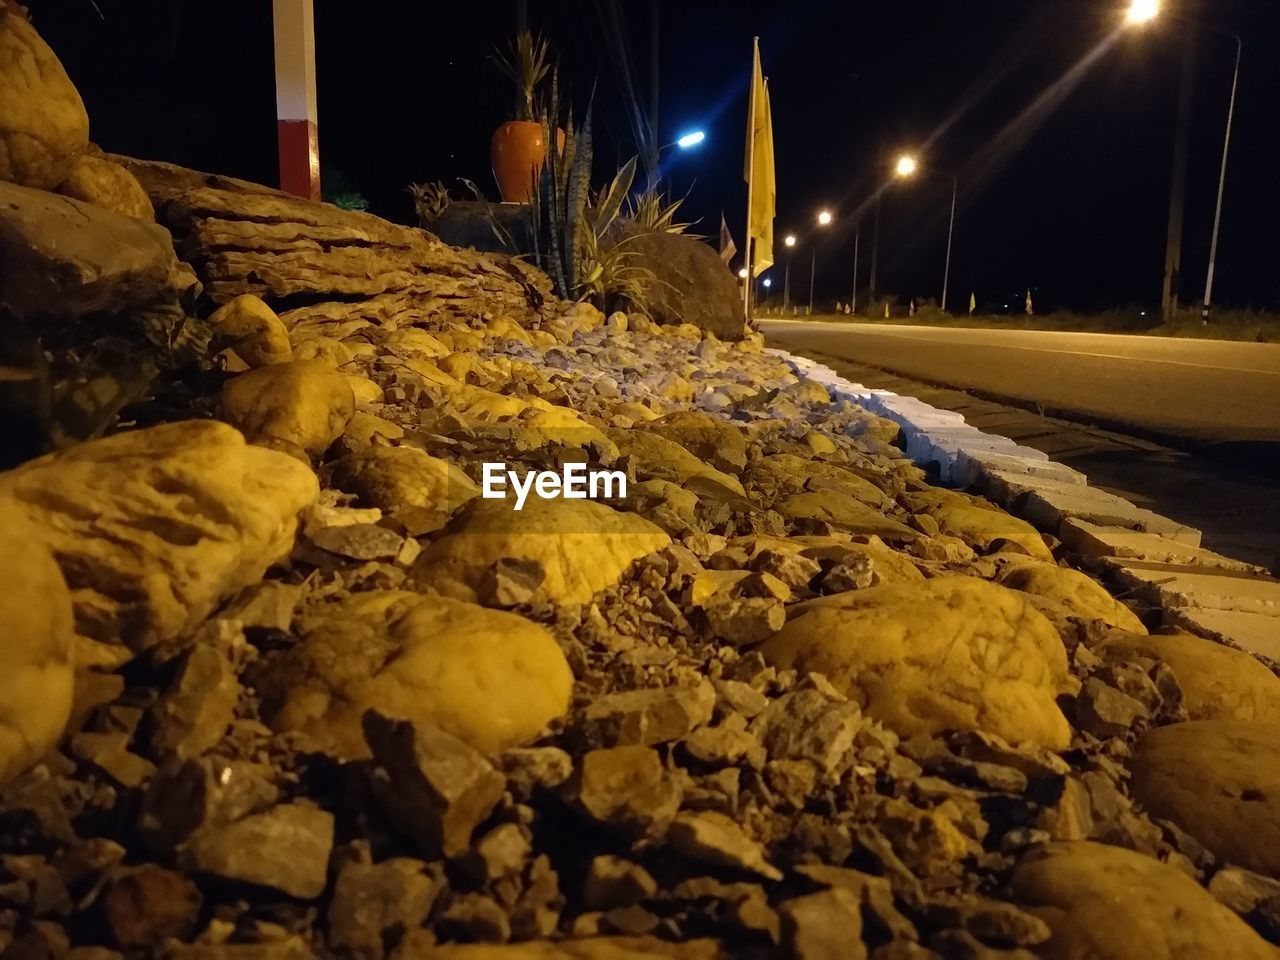 night, illuminated, no people, lighting equipment, street light, street, nature, winter, yellow, rock, selective focus, solid, snow, cold temperature, close-up, plant, glowing, rock - object, electricity, light - natural phenomenon